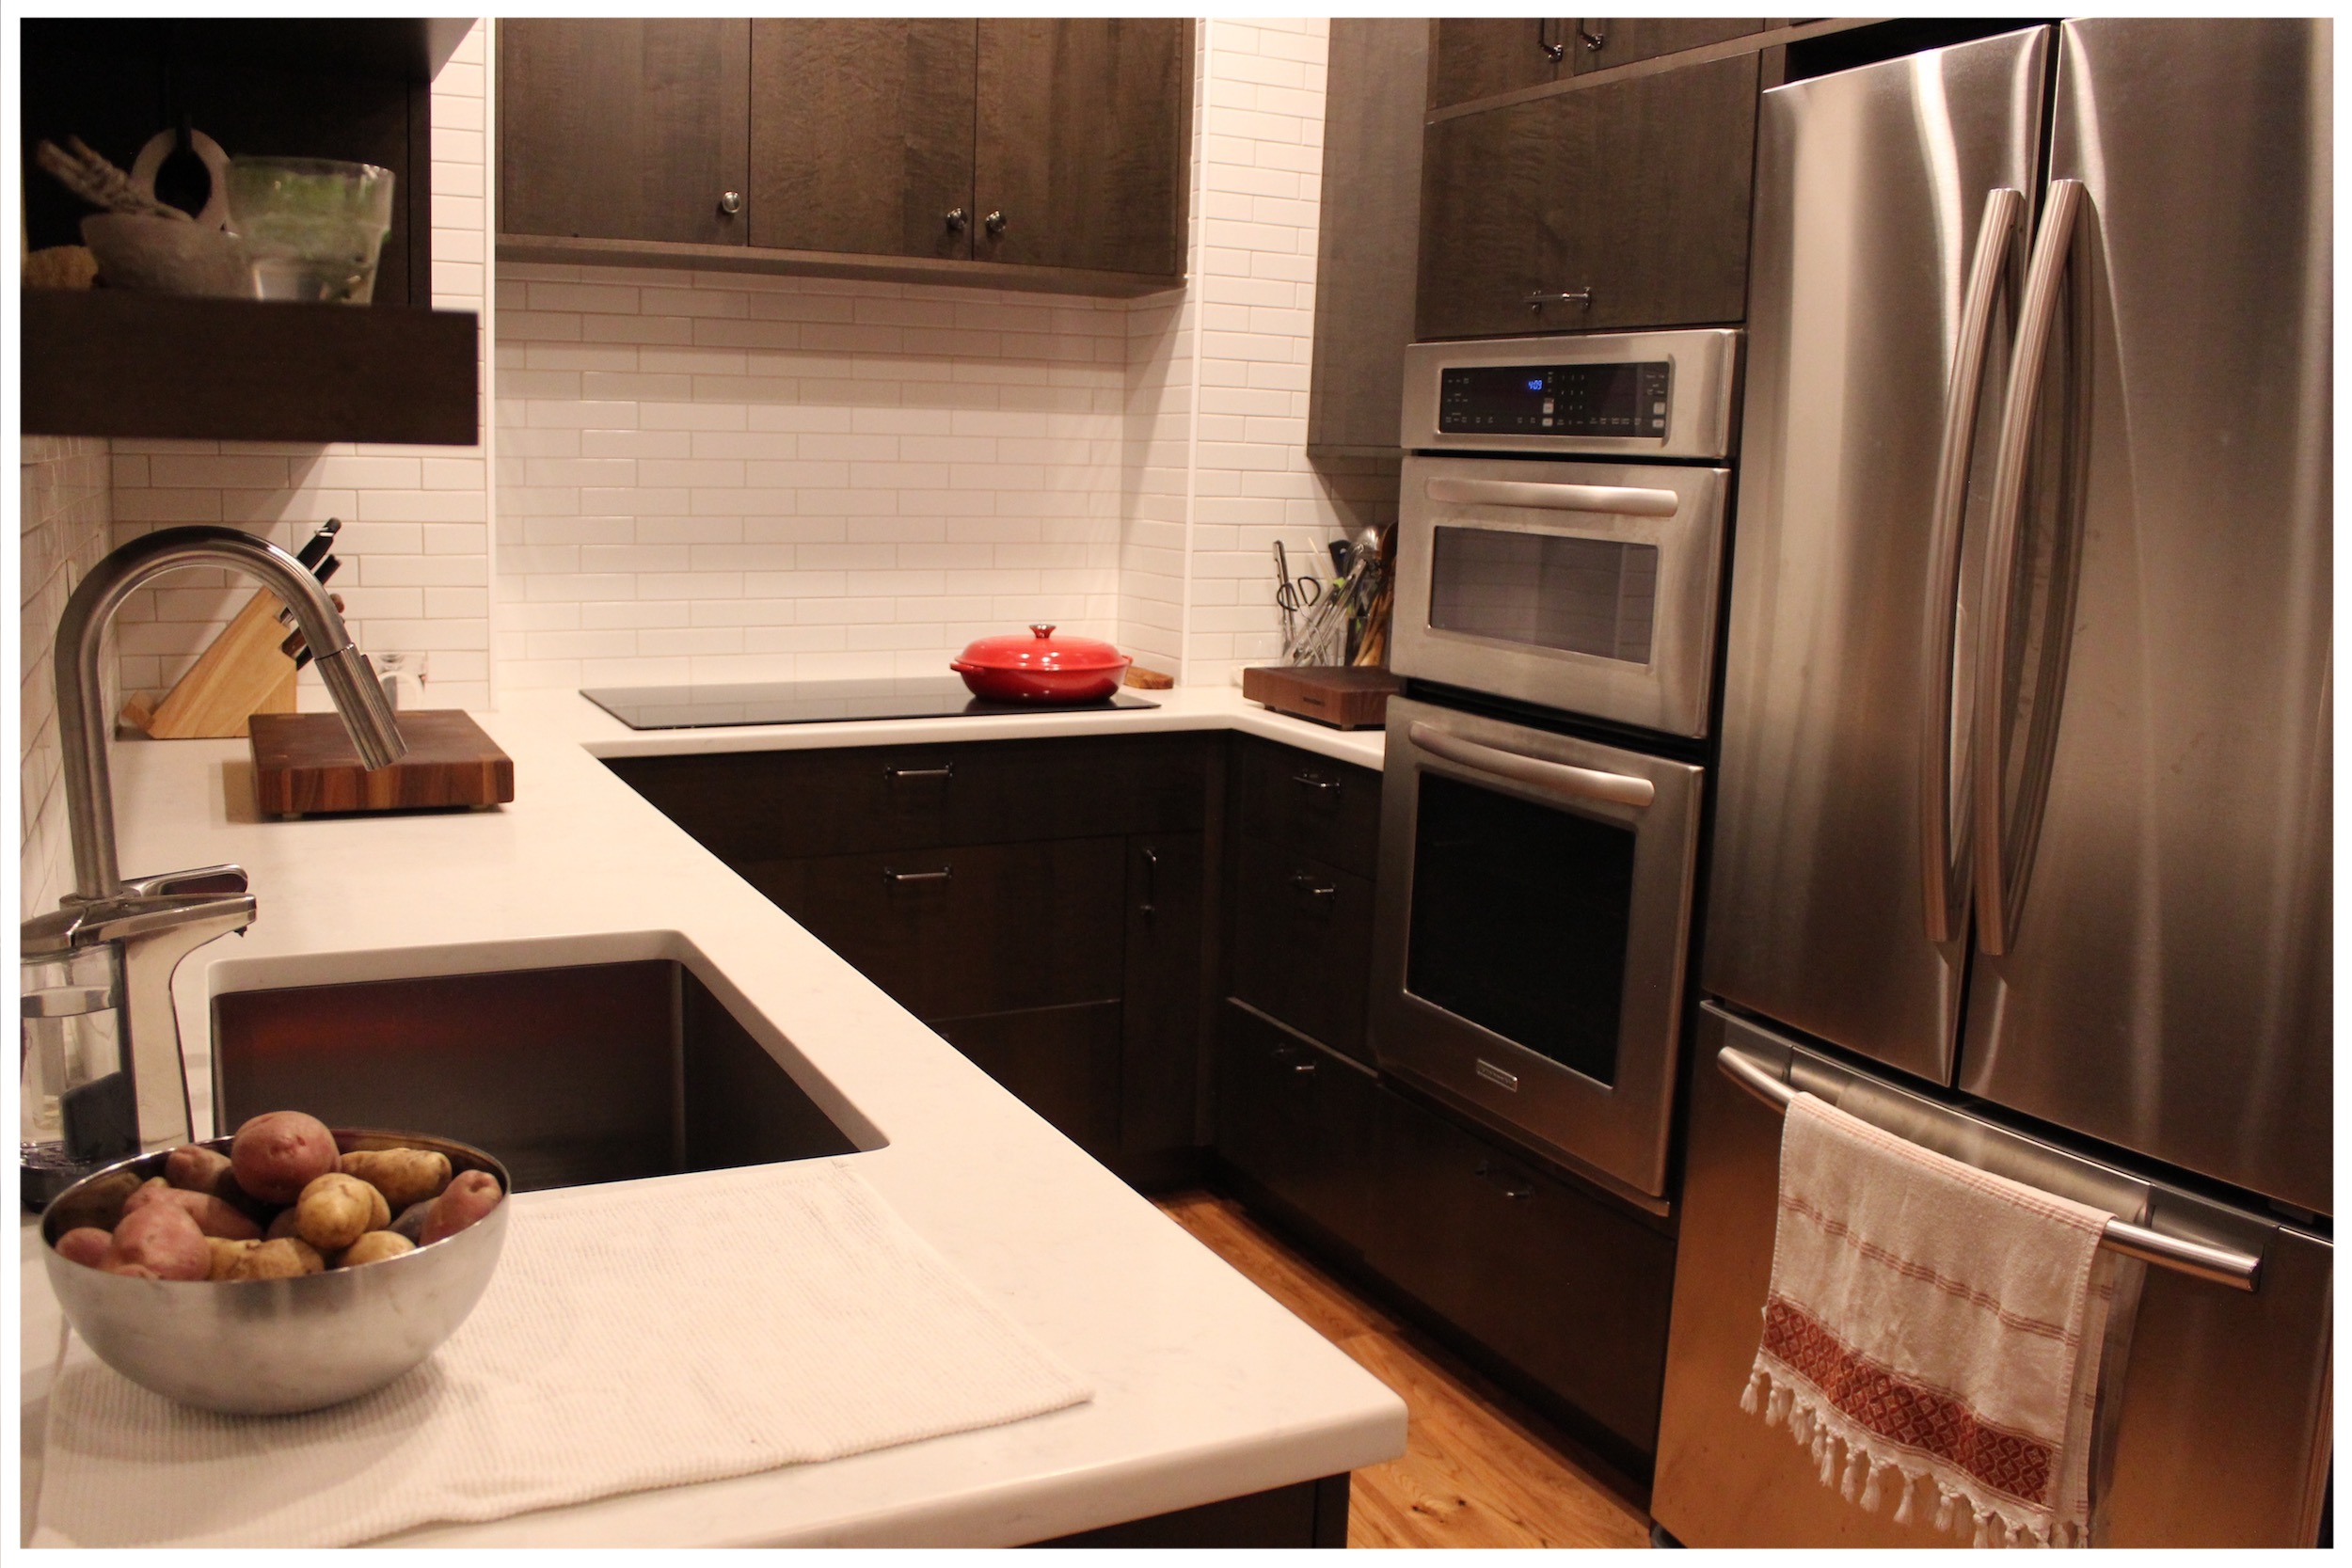 2_KitchenVisions-Modern-Kitchen-Boston.jpg